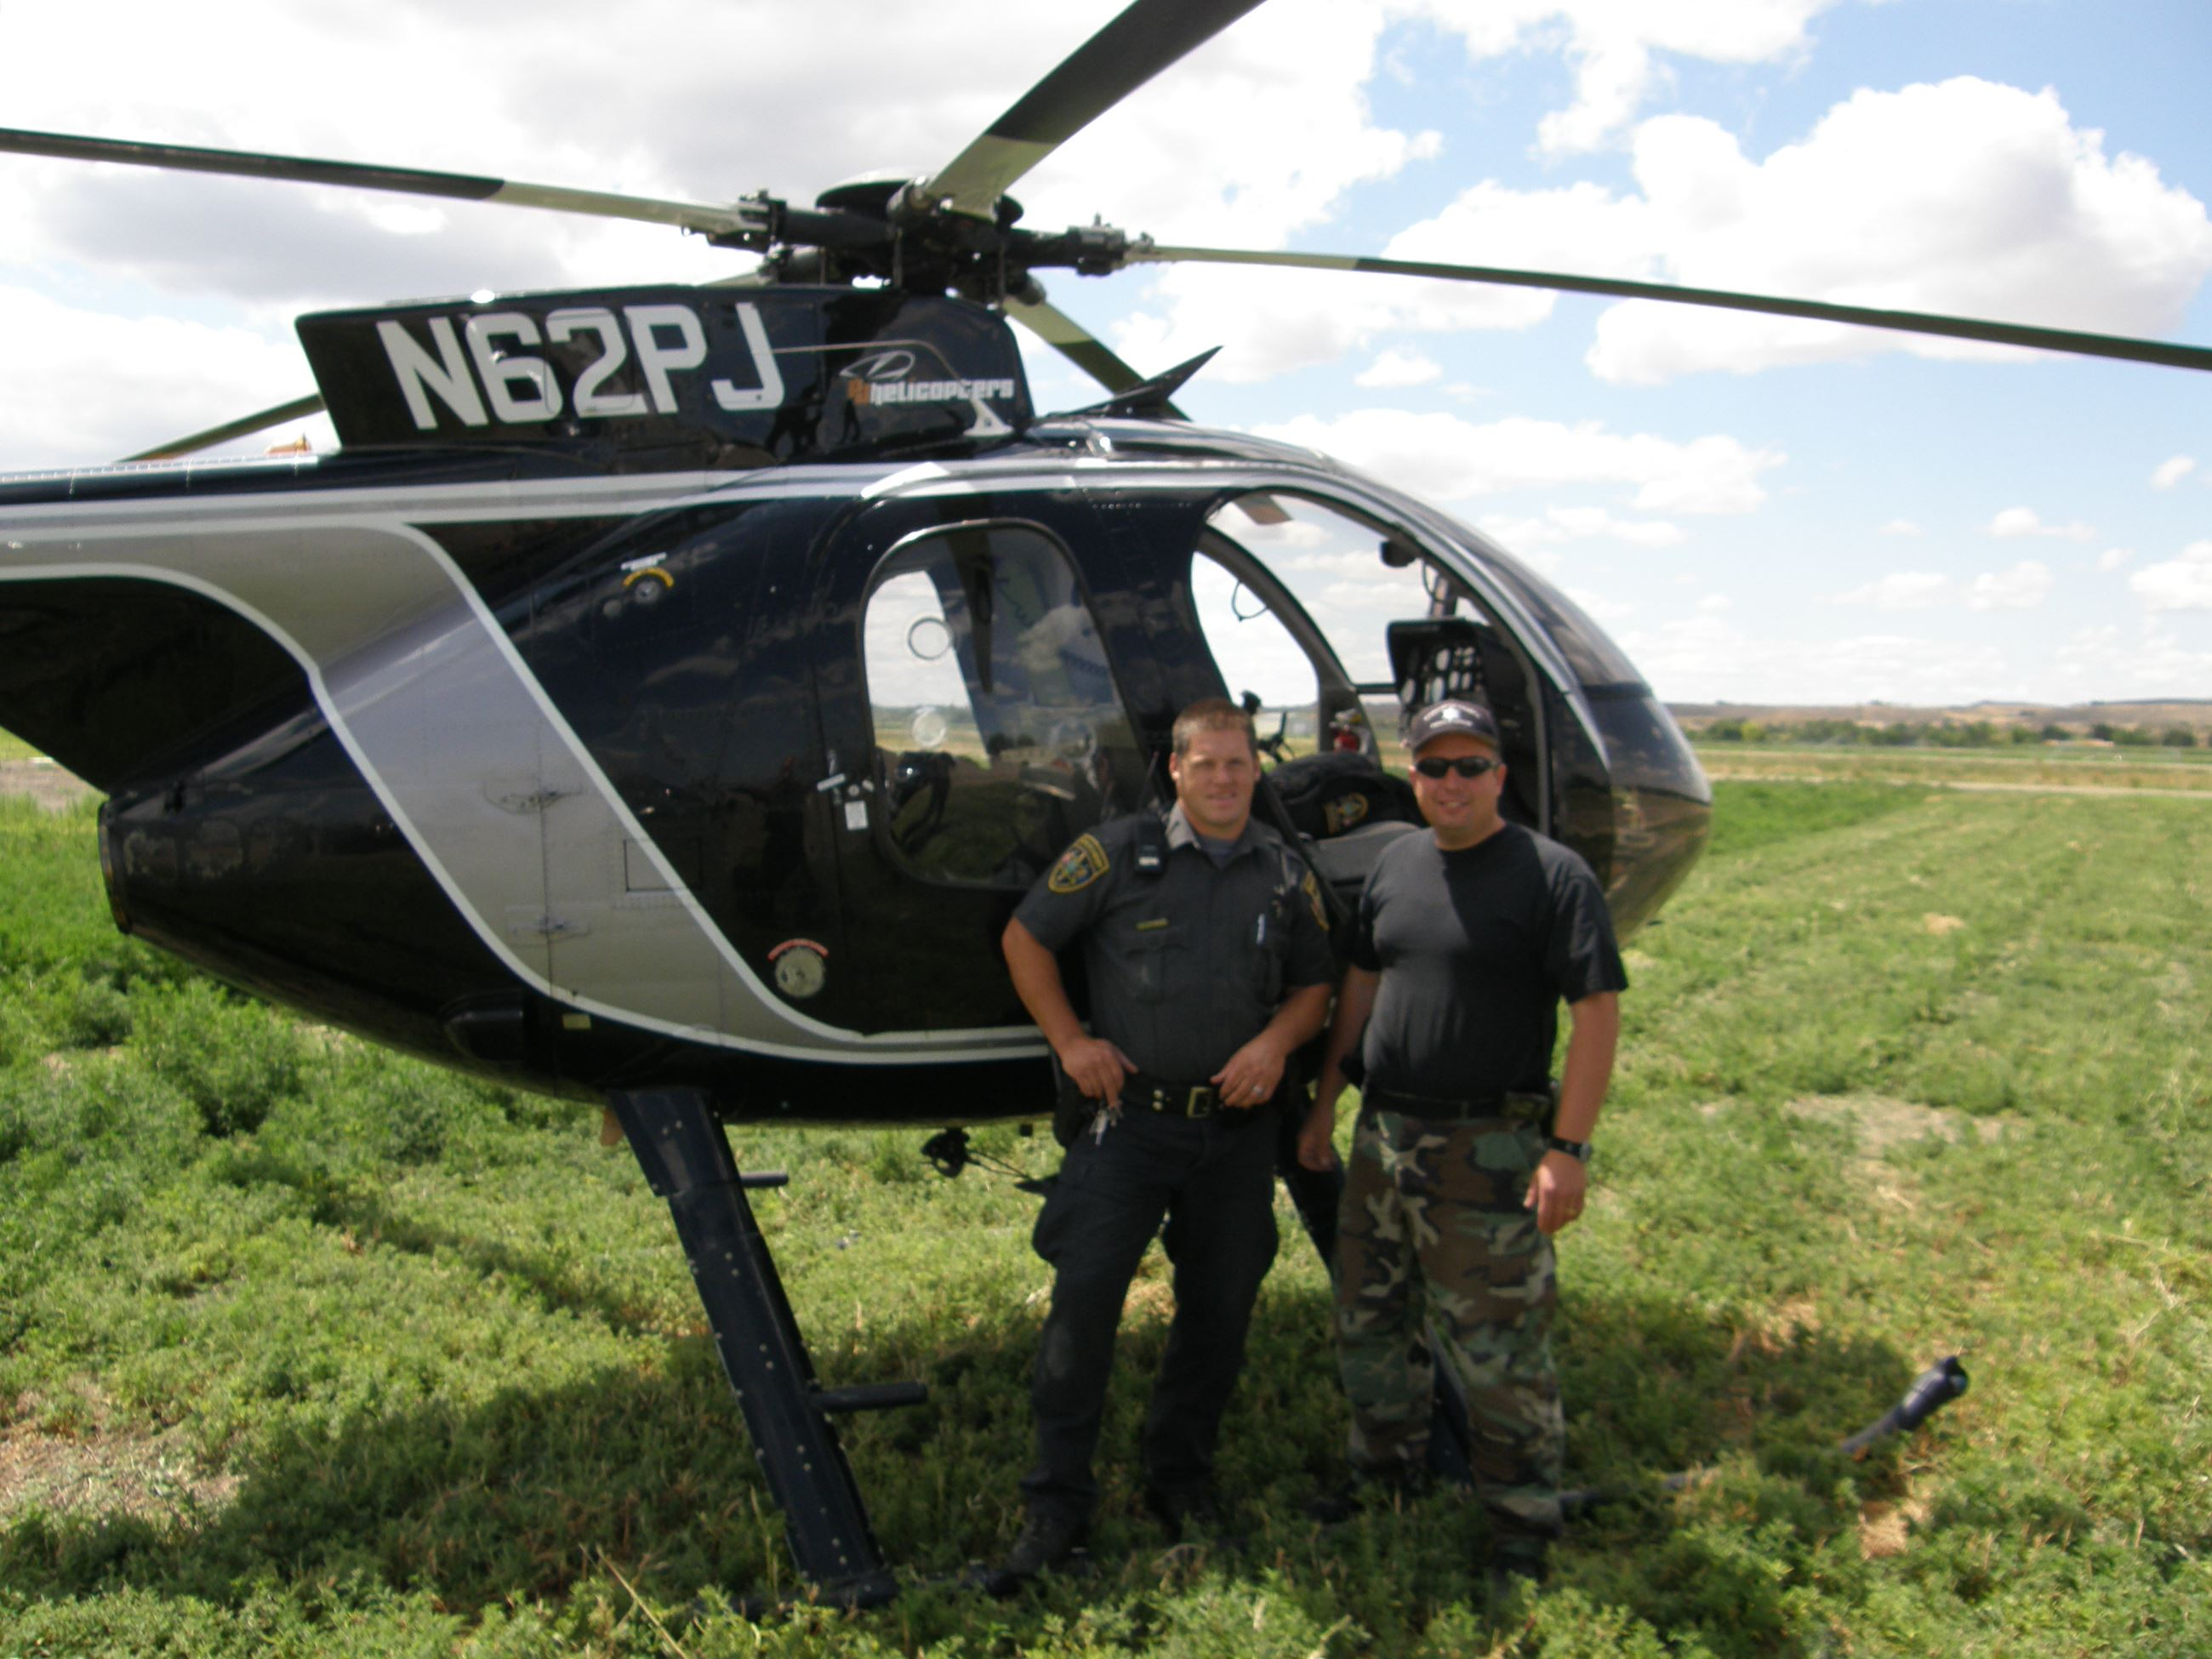 Two Men in Front of a Helicopter